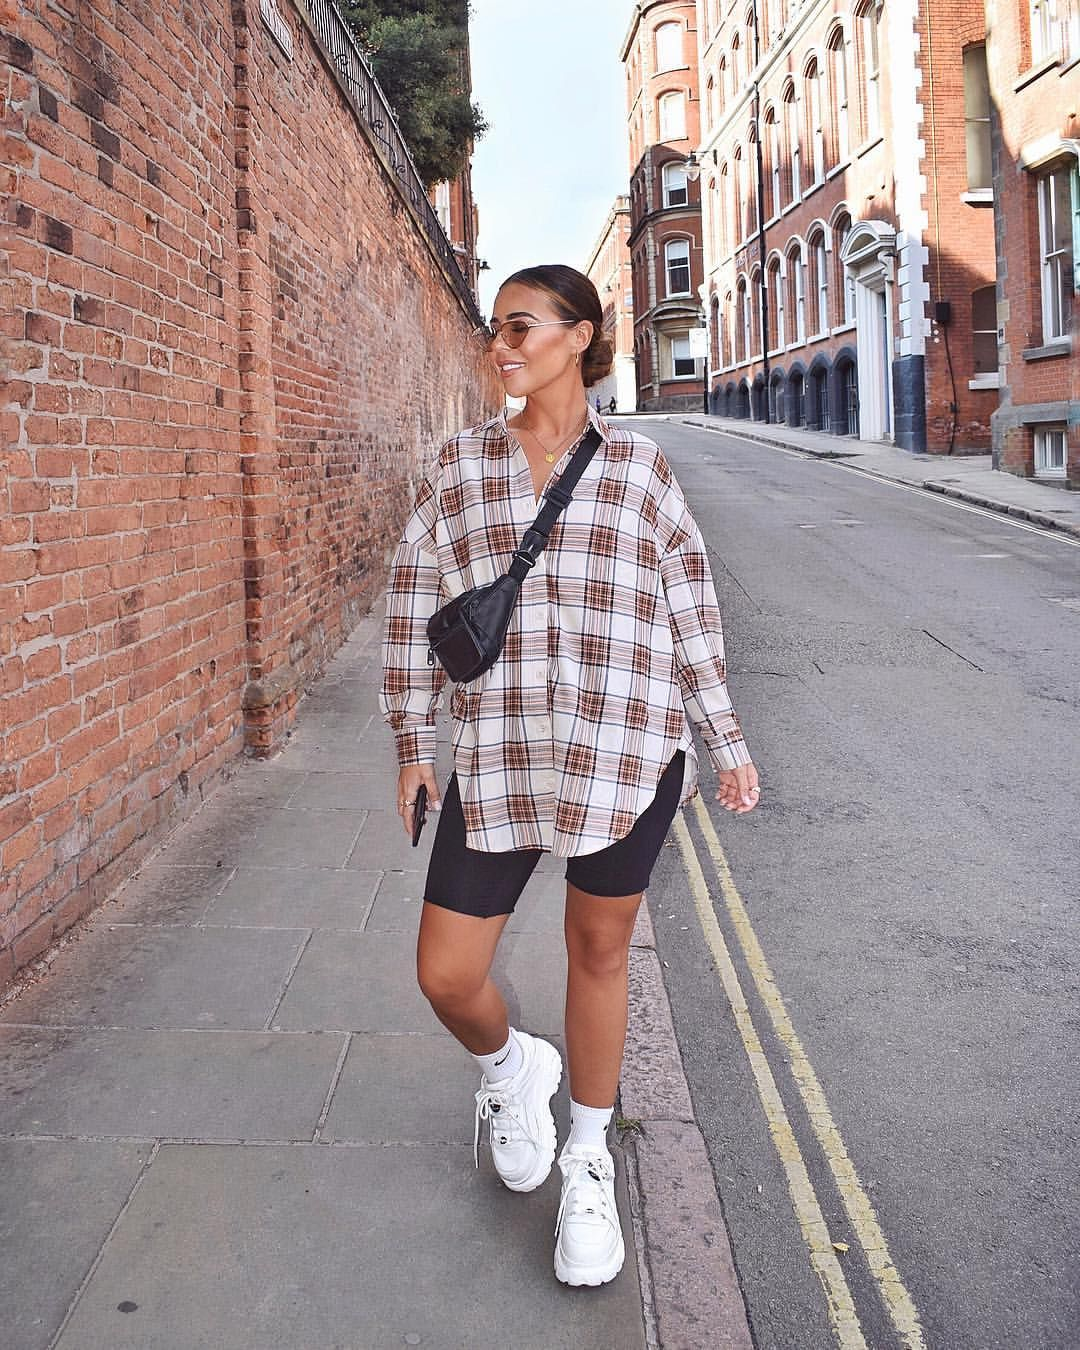 Just me, here, in another checked shirt Shirt - @boohoo (I just put